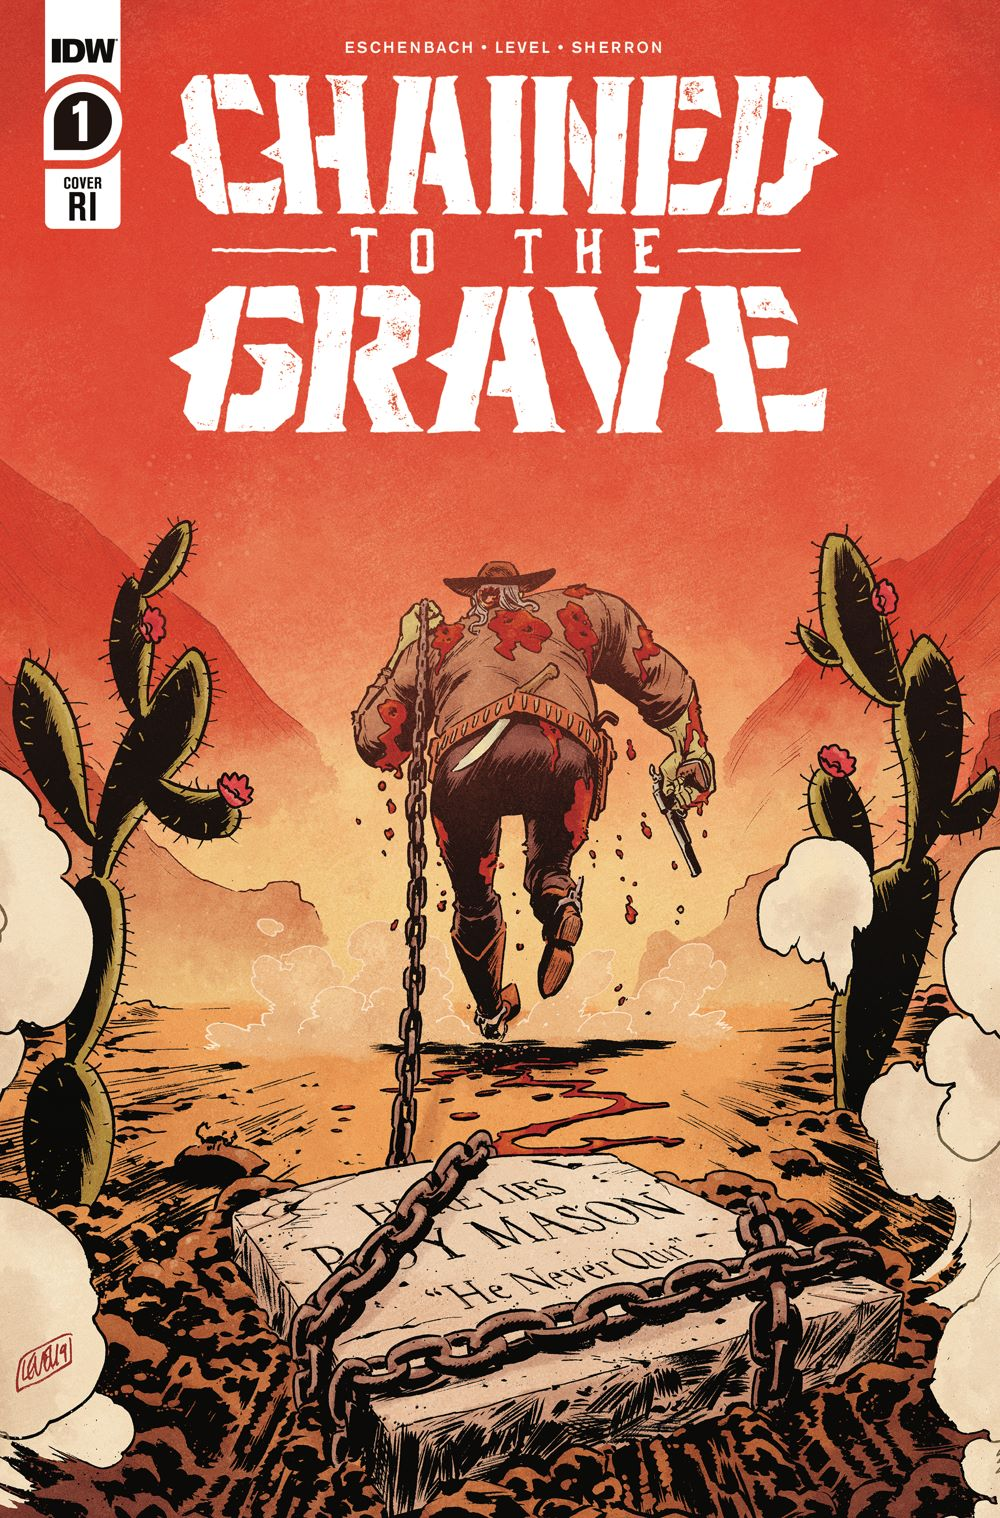 ChainedTTGrave_01_cvrRI ComicList: IDW Publishing New Releases for 02/03/2021